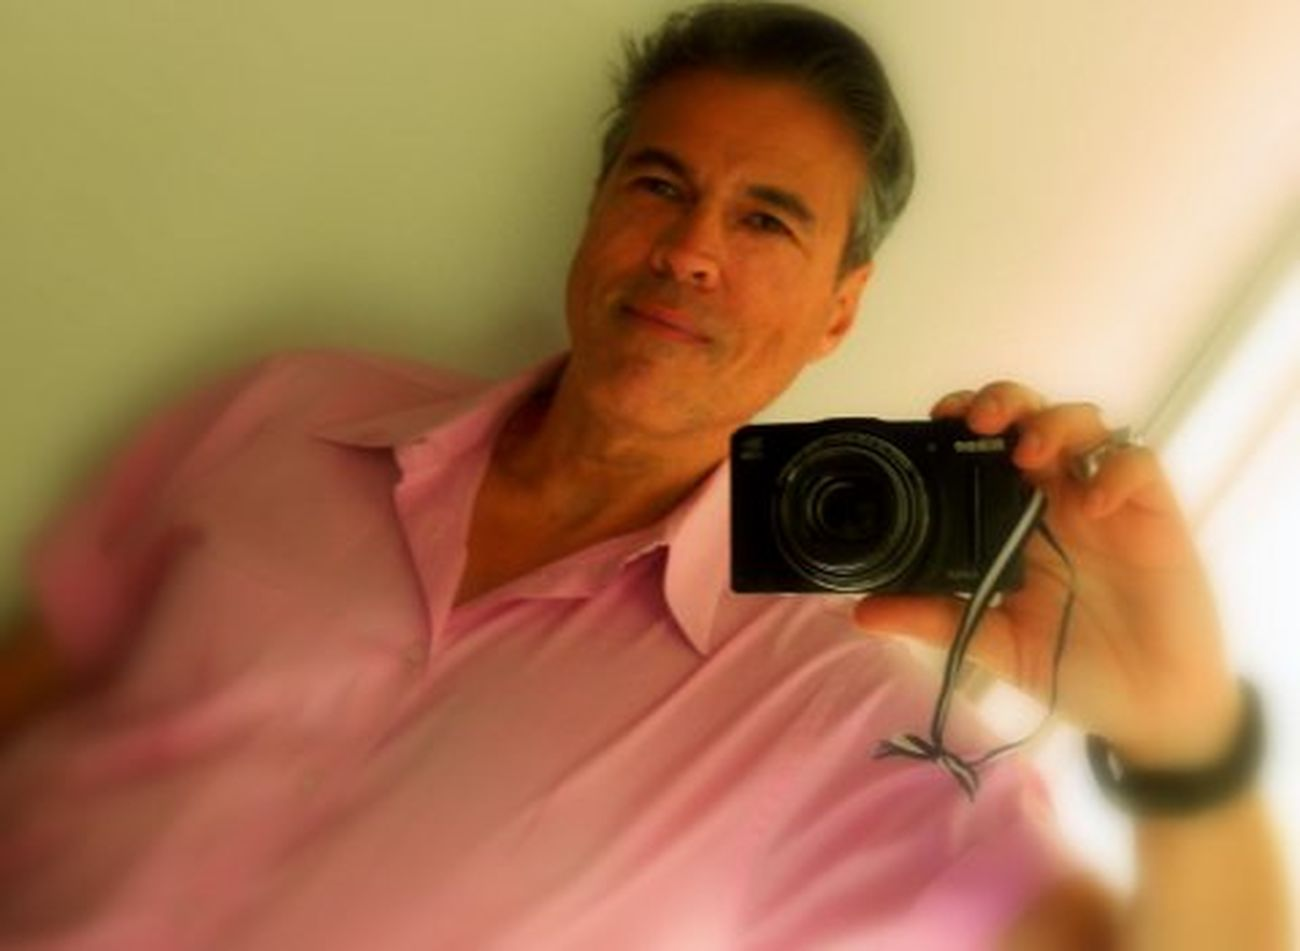 Self Portrait of me Michael J Armijo in Soft Focus at home in a Pink Shirt